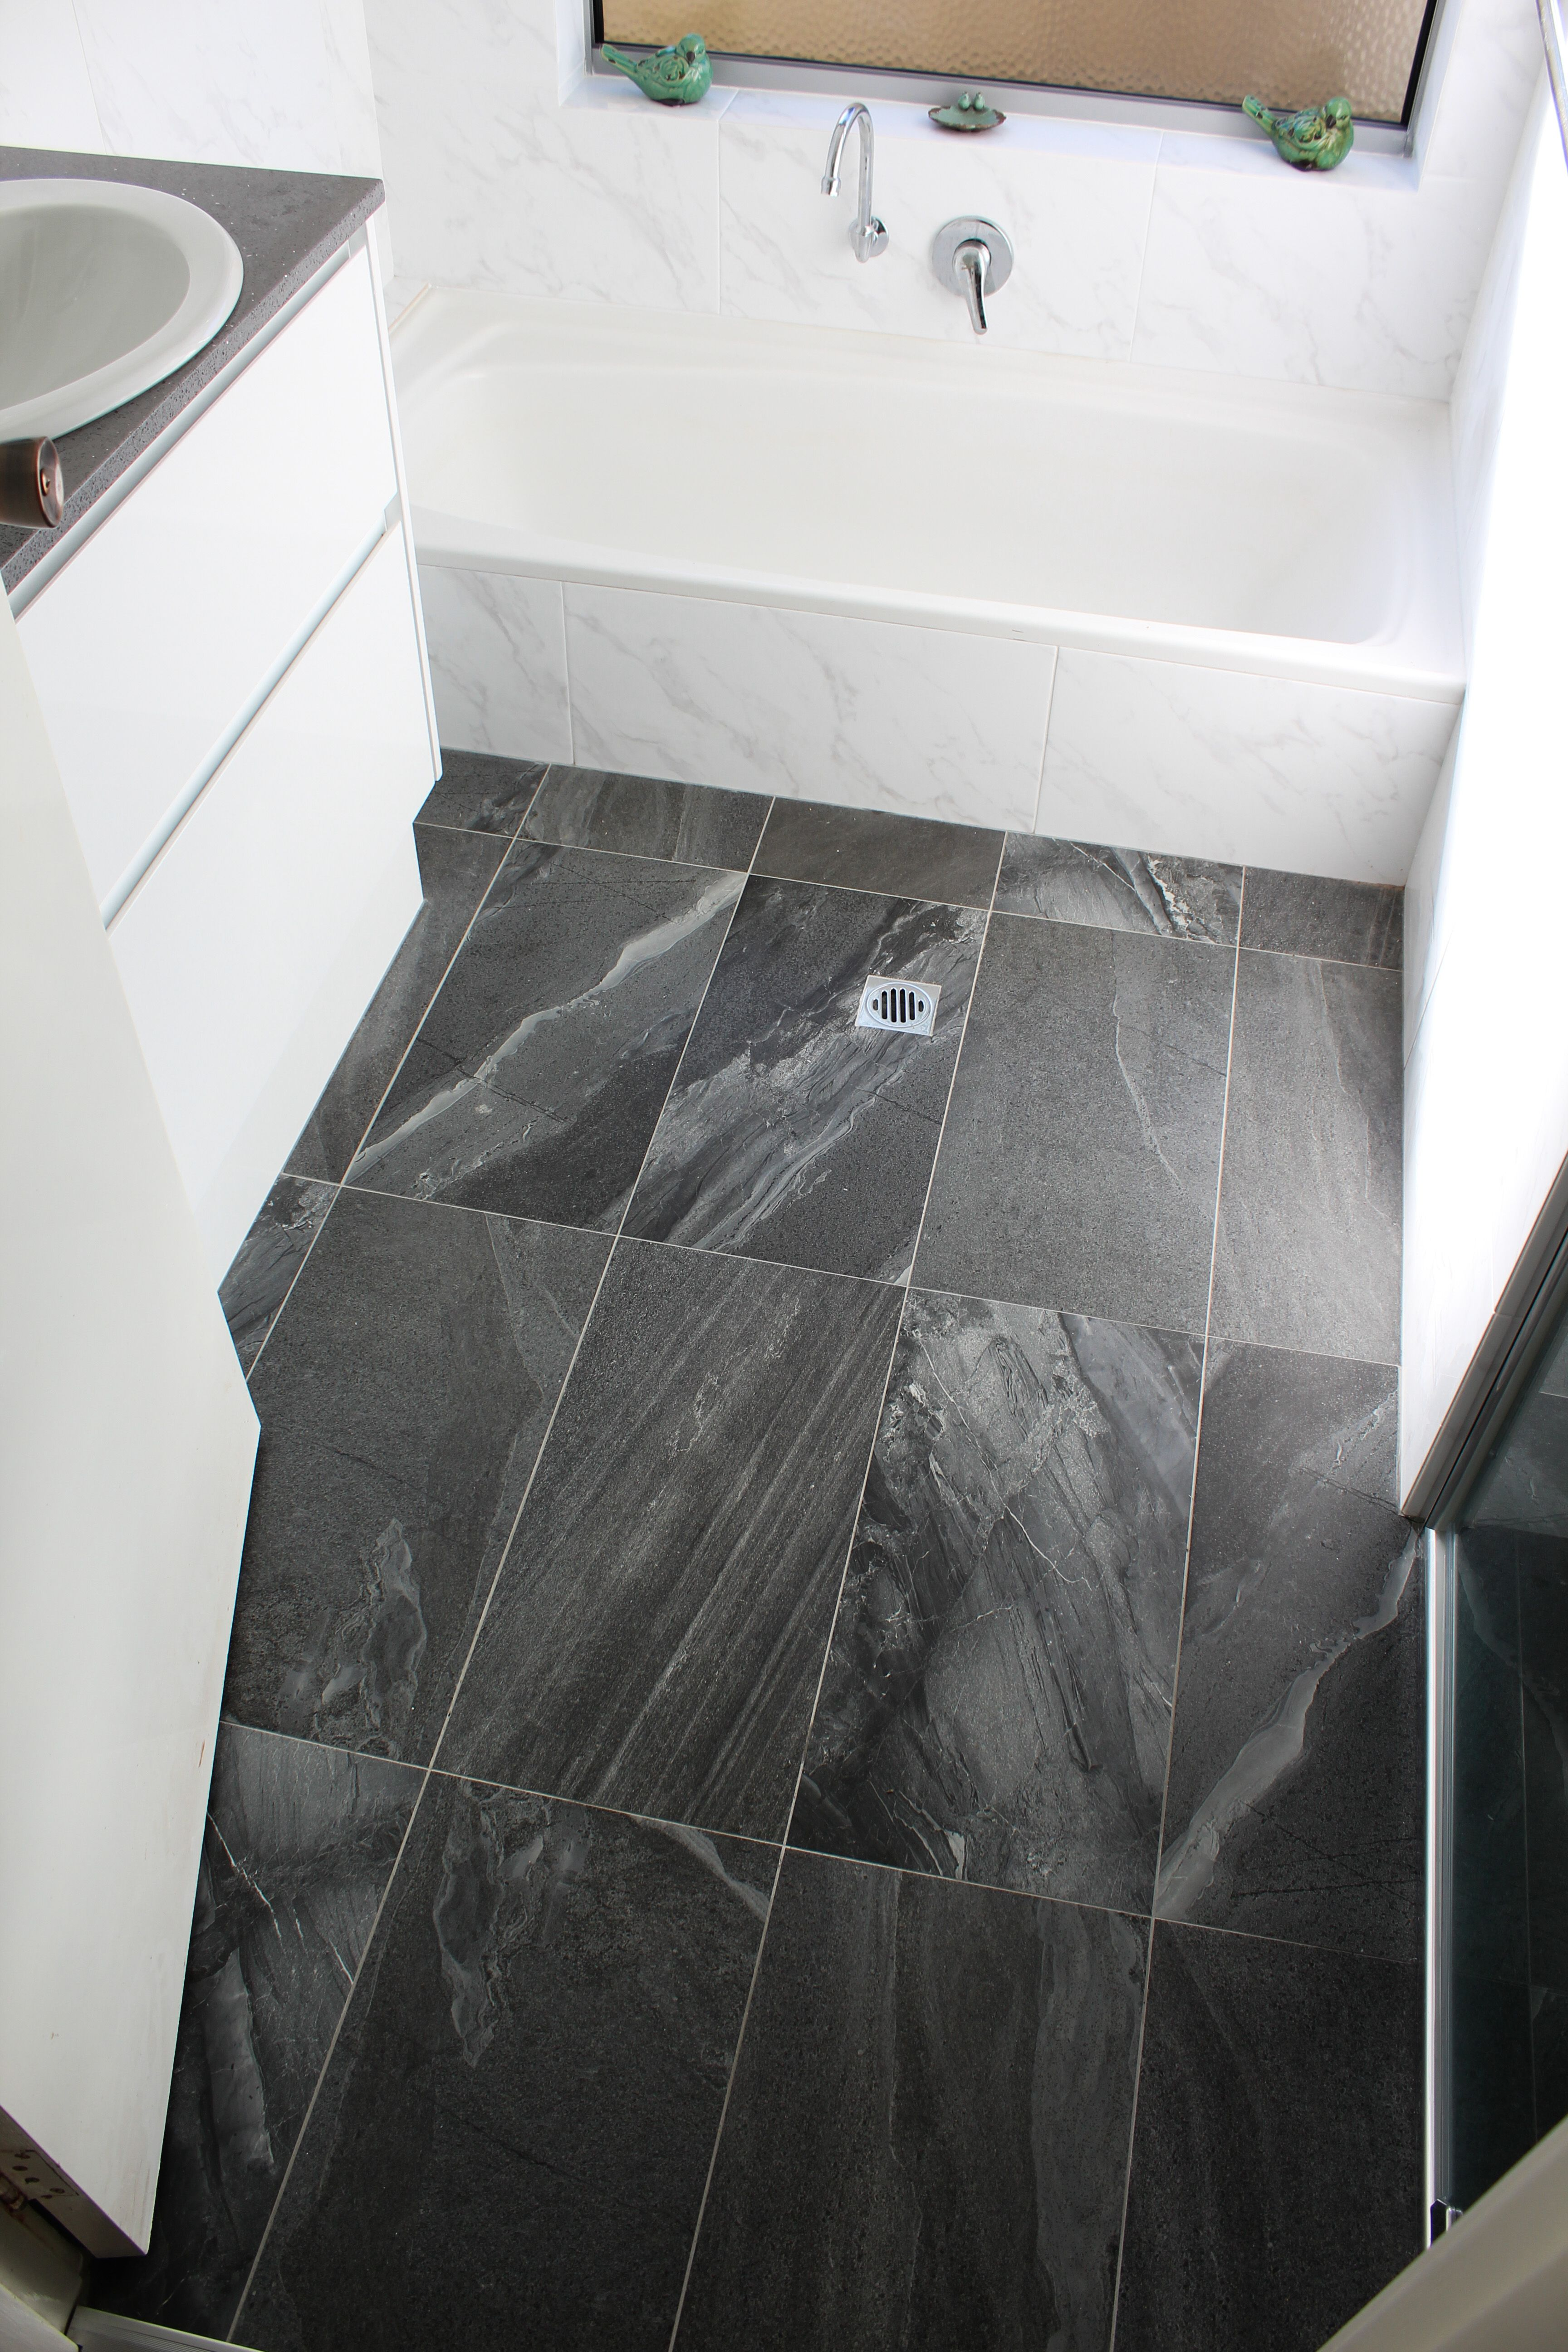 Charcoal Bathroom Stone Bathroom Tiles Charcoal and Marble Wall Tiles Black and White Bathrooms the Ball Bathrooms